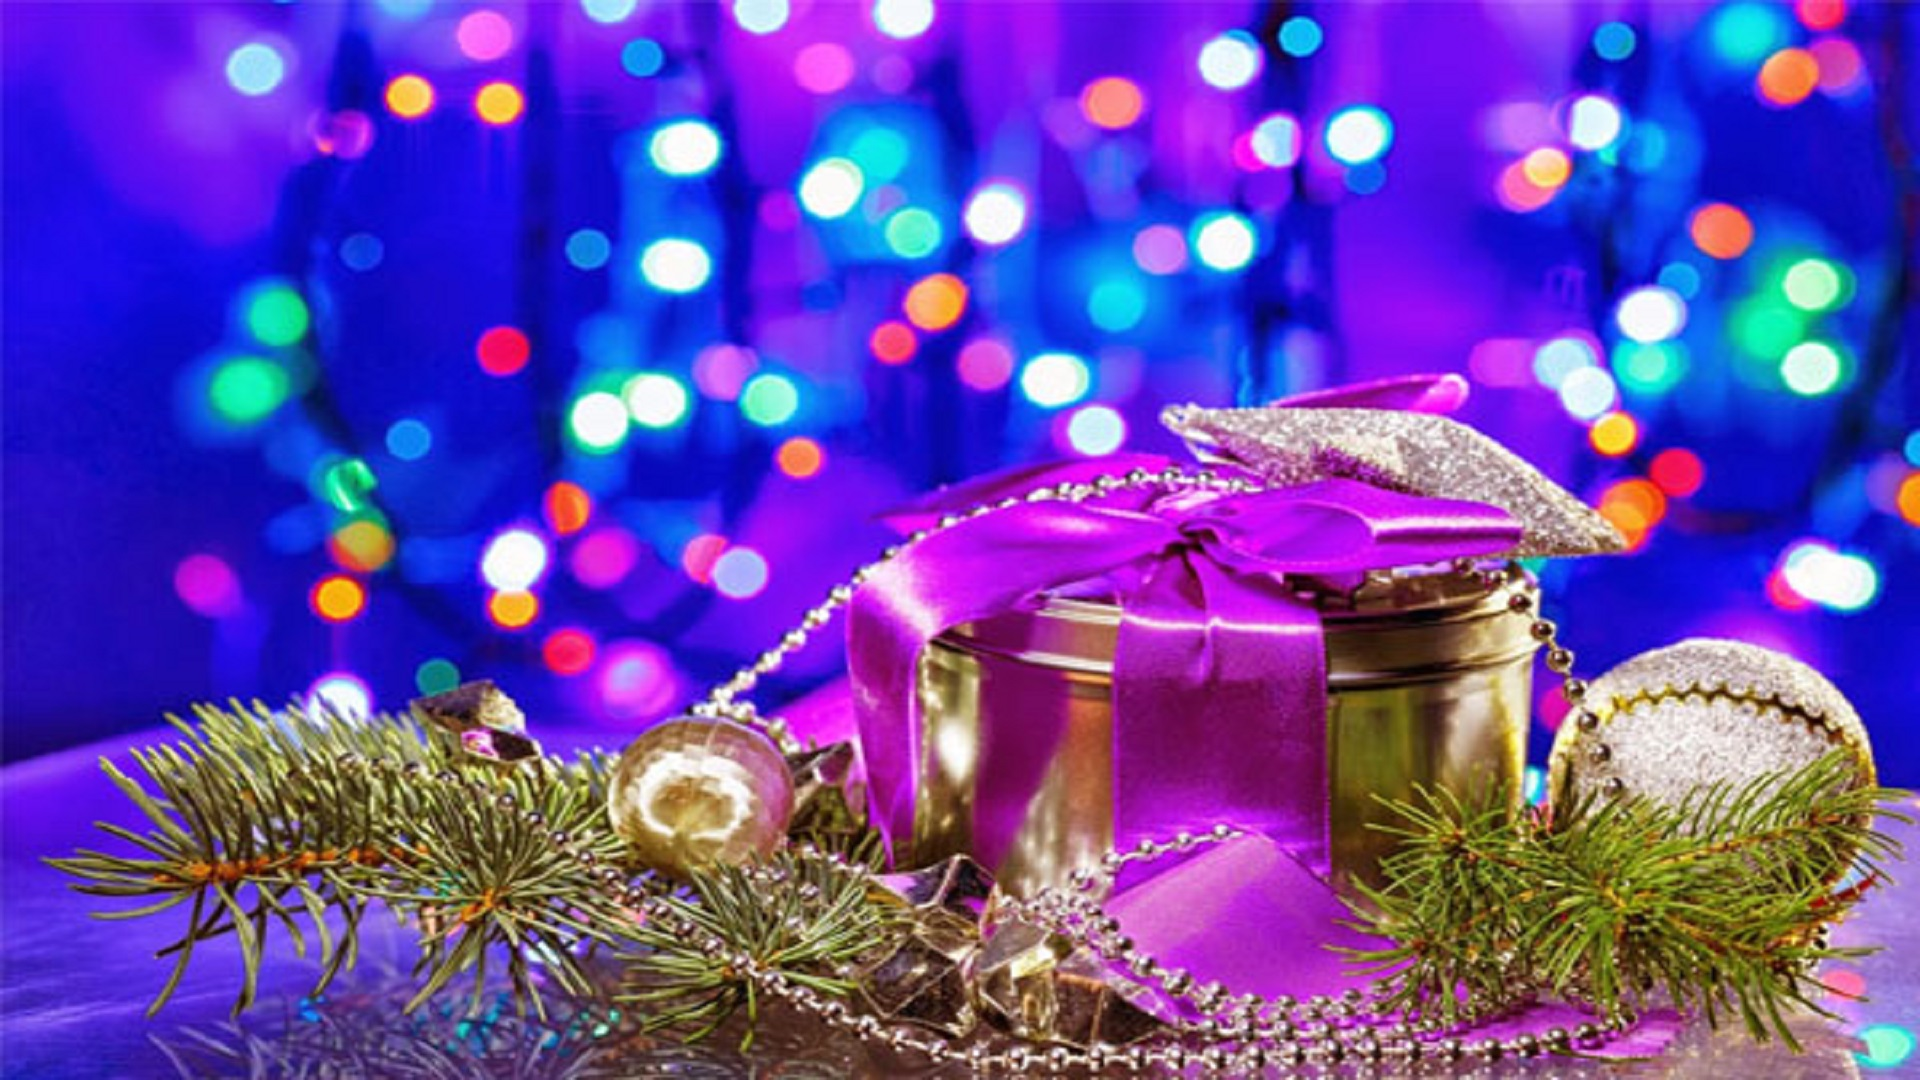 Top 24 Best Free Hd Christmas Wallpapers: Top-10-Merry-Christmas-free-hd-wallpapers-for-desktop